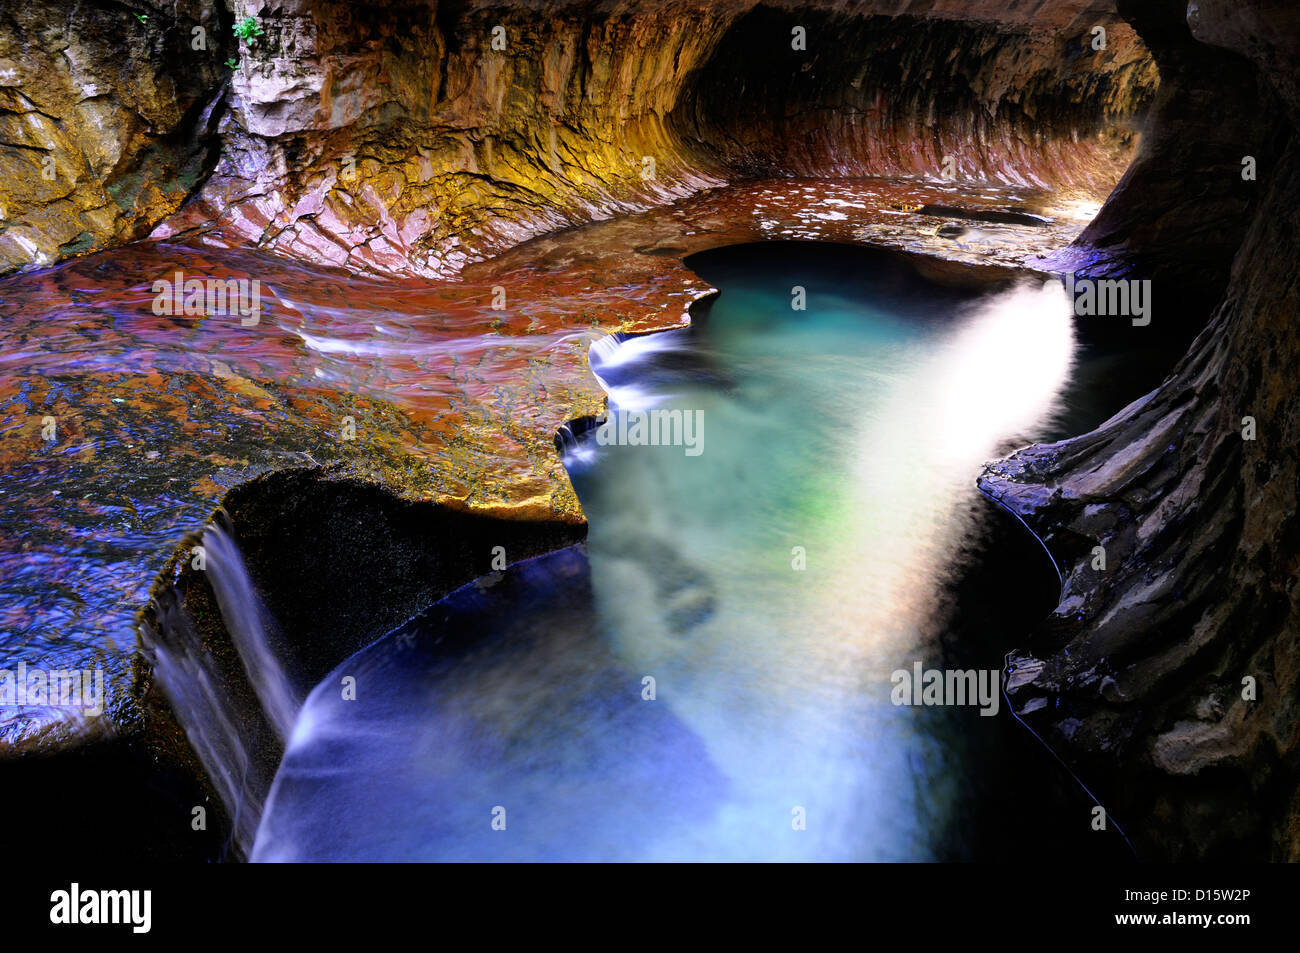 The Subway Left Fork of North Creek Zion National Park Utah rock formation beam shaft light pool famous hike - Stock Image